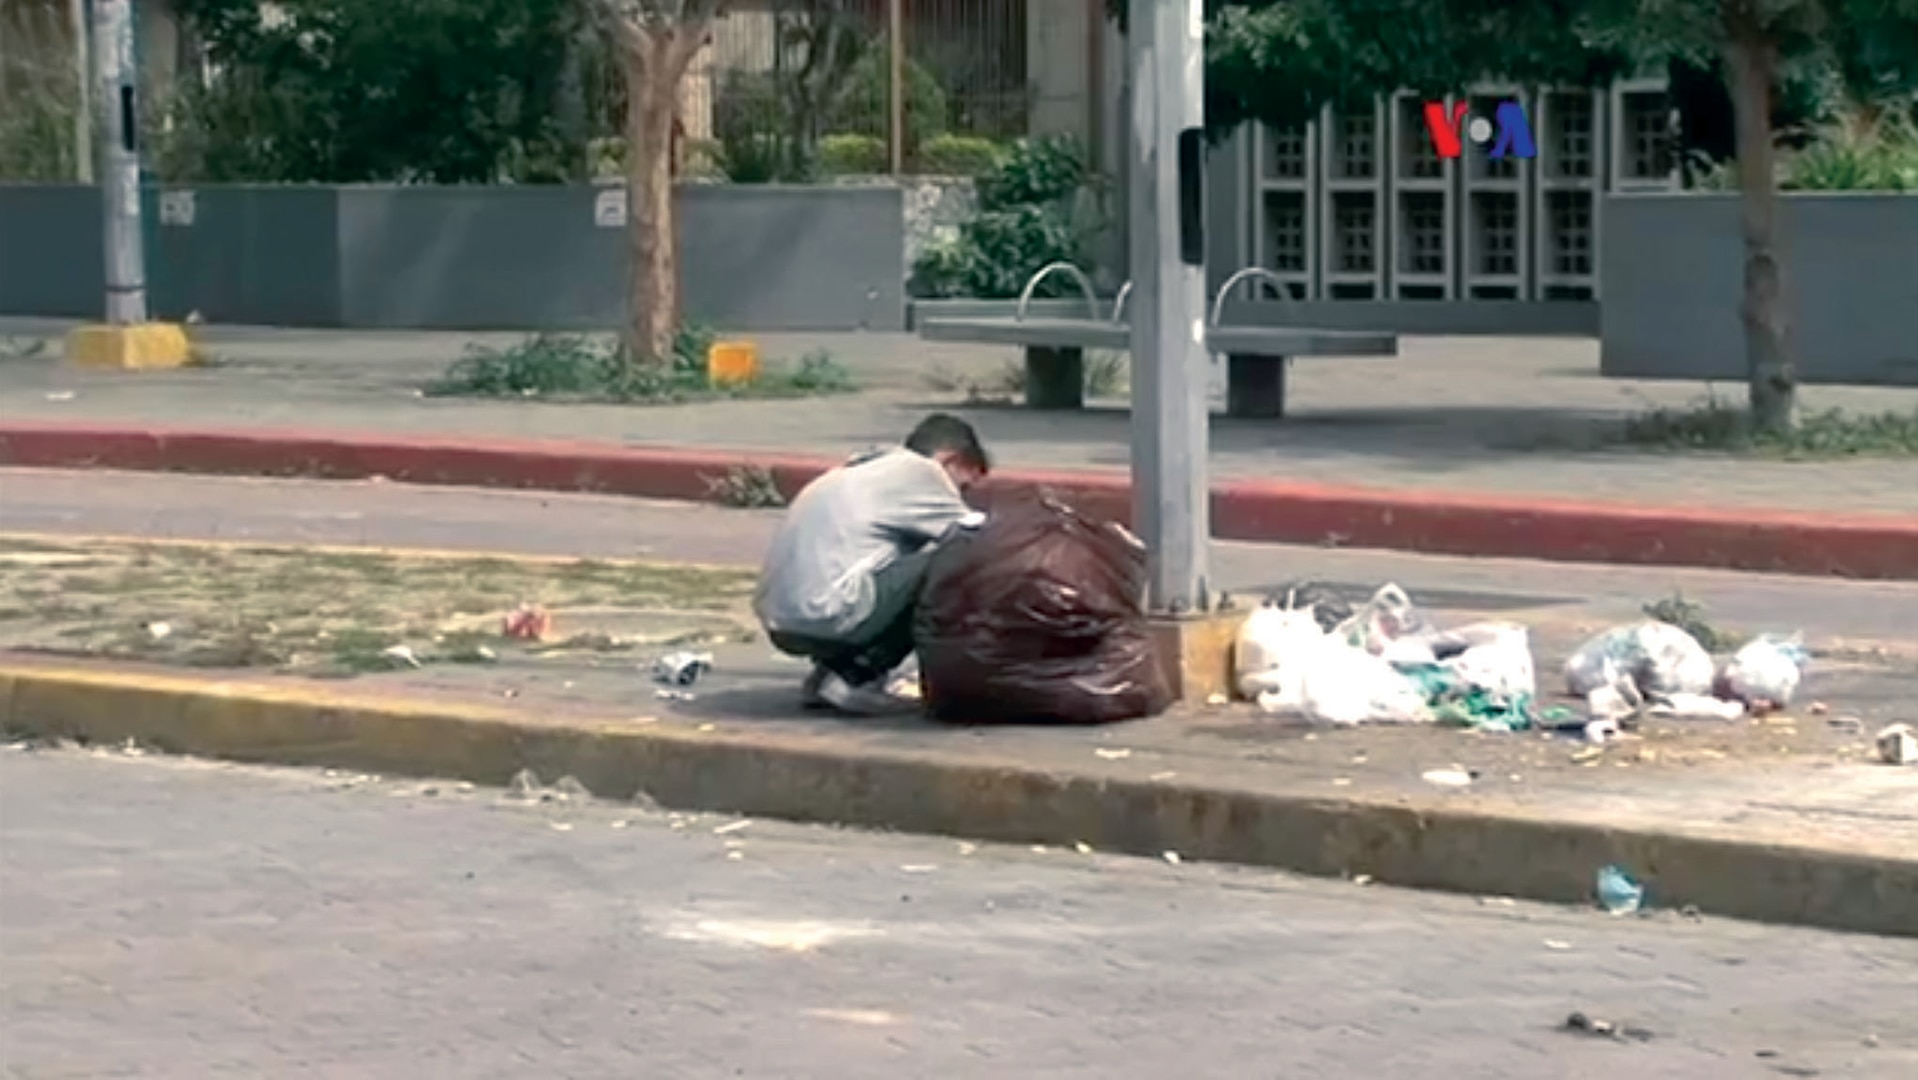 A Venezuelan eating from a garbage bag due to food shortages in 2017. (VOA) 